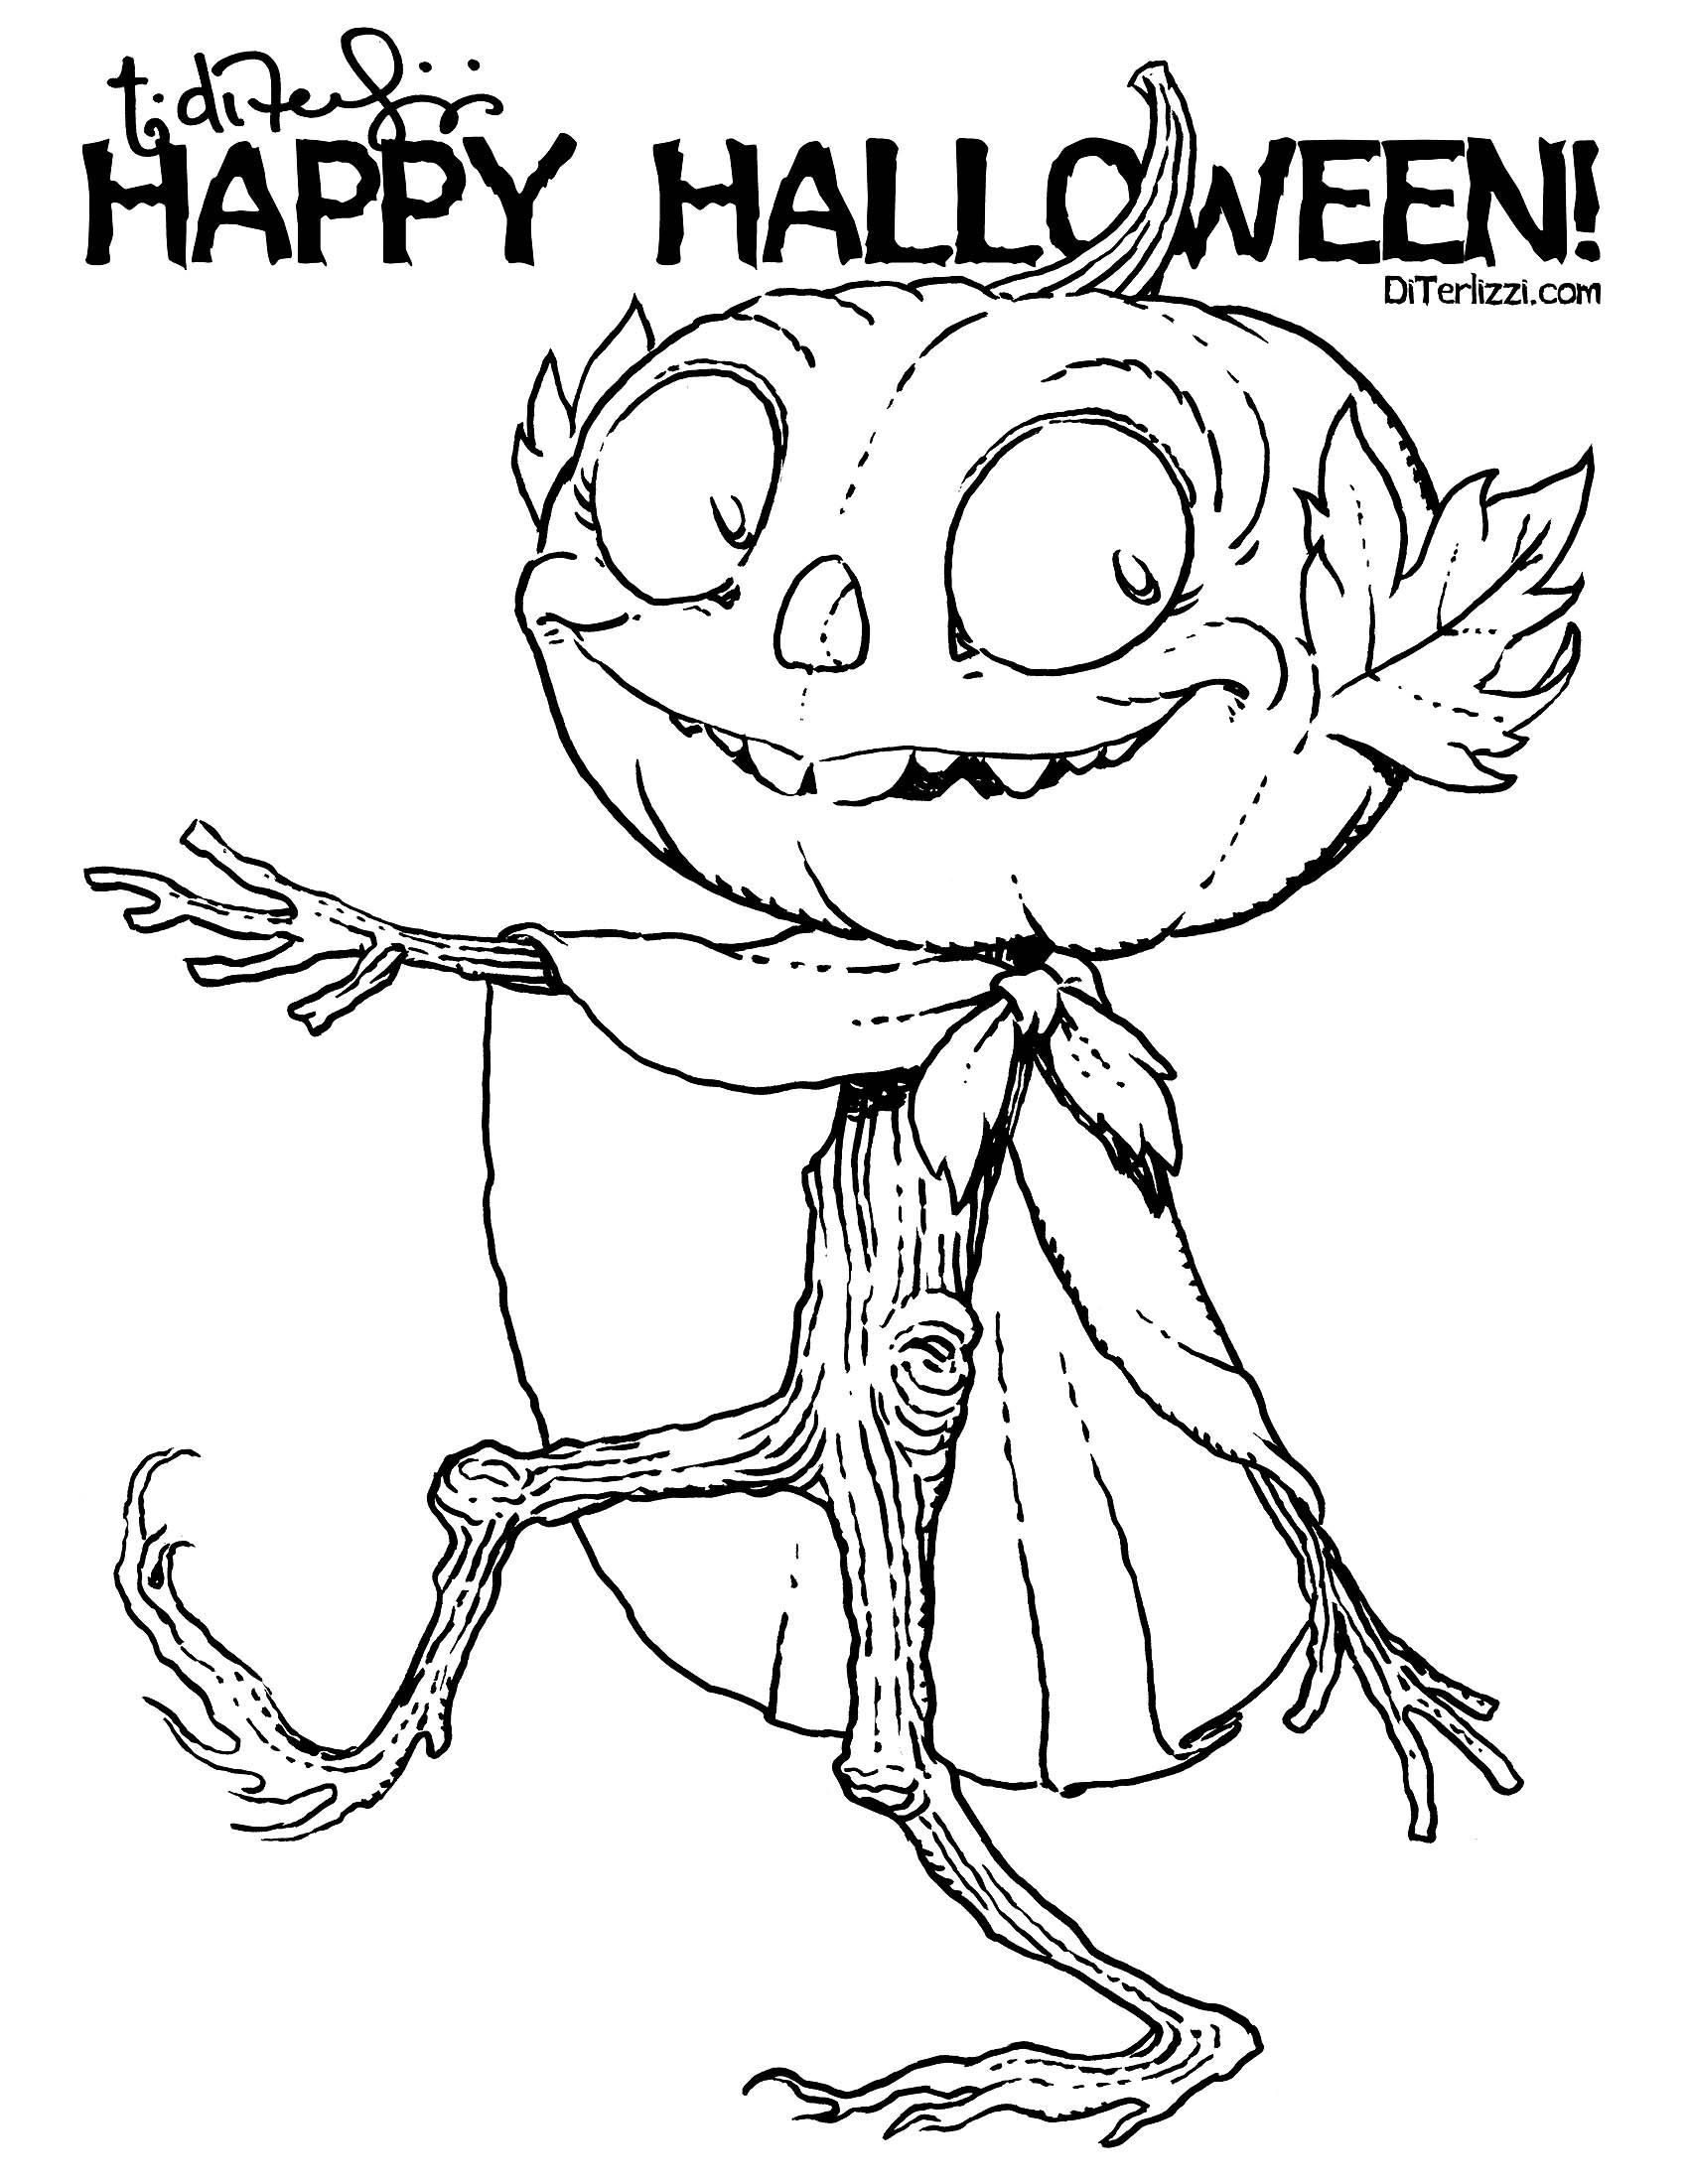 Jacko'Lantern Parade, free downloadable printables from